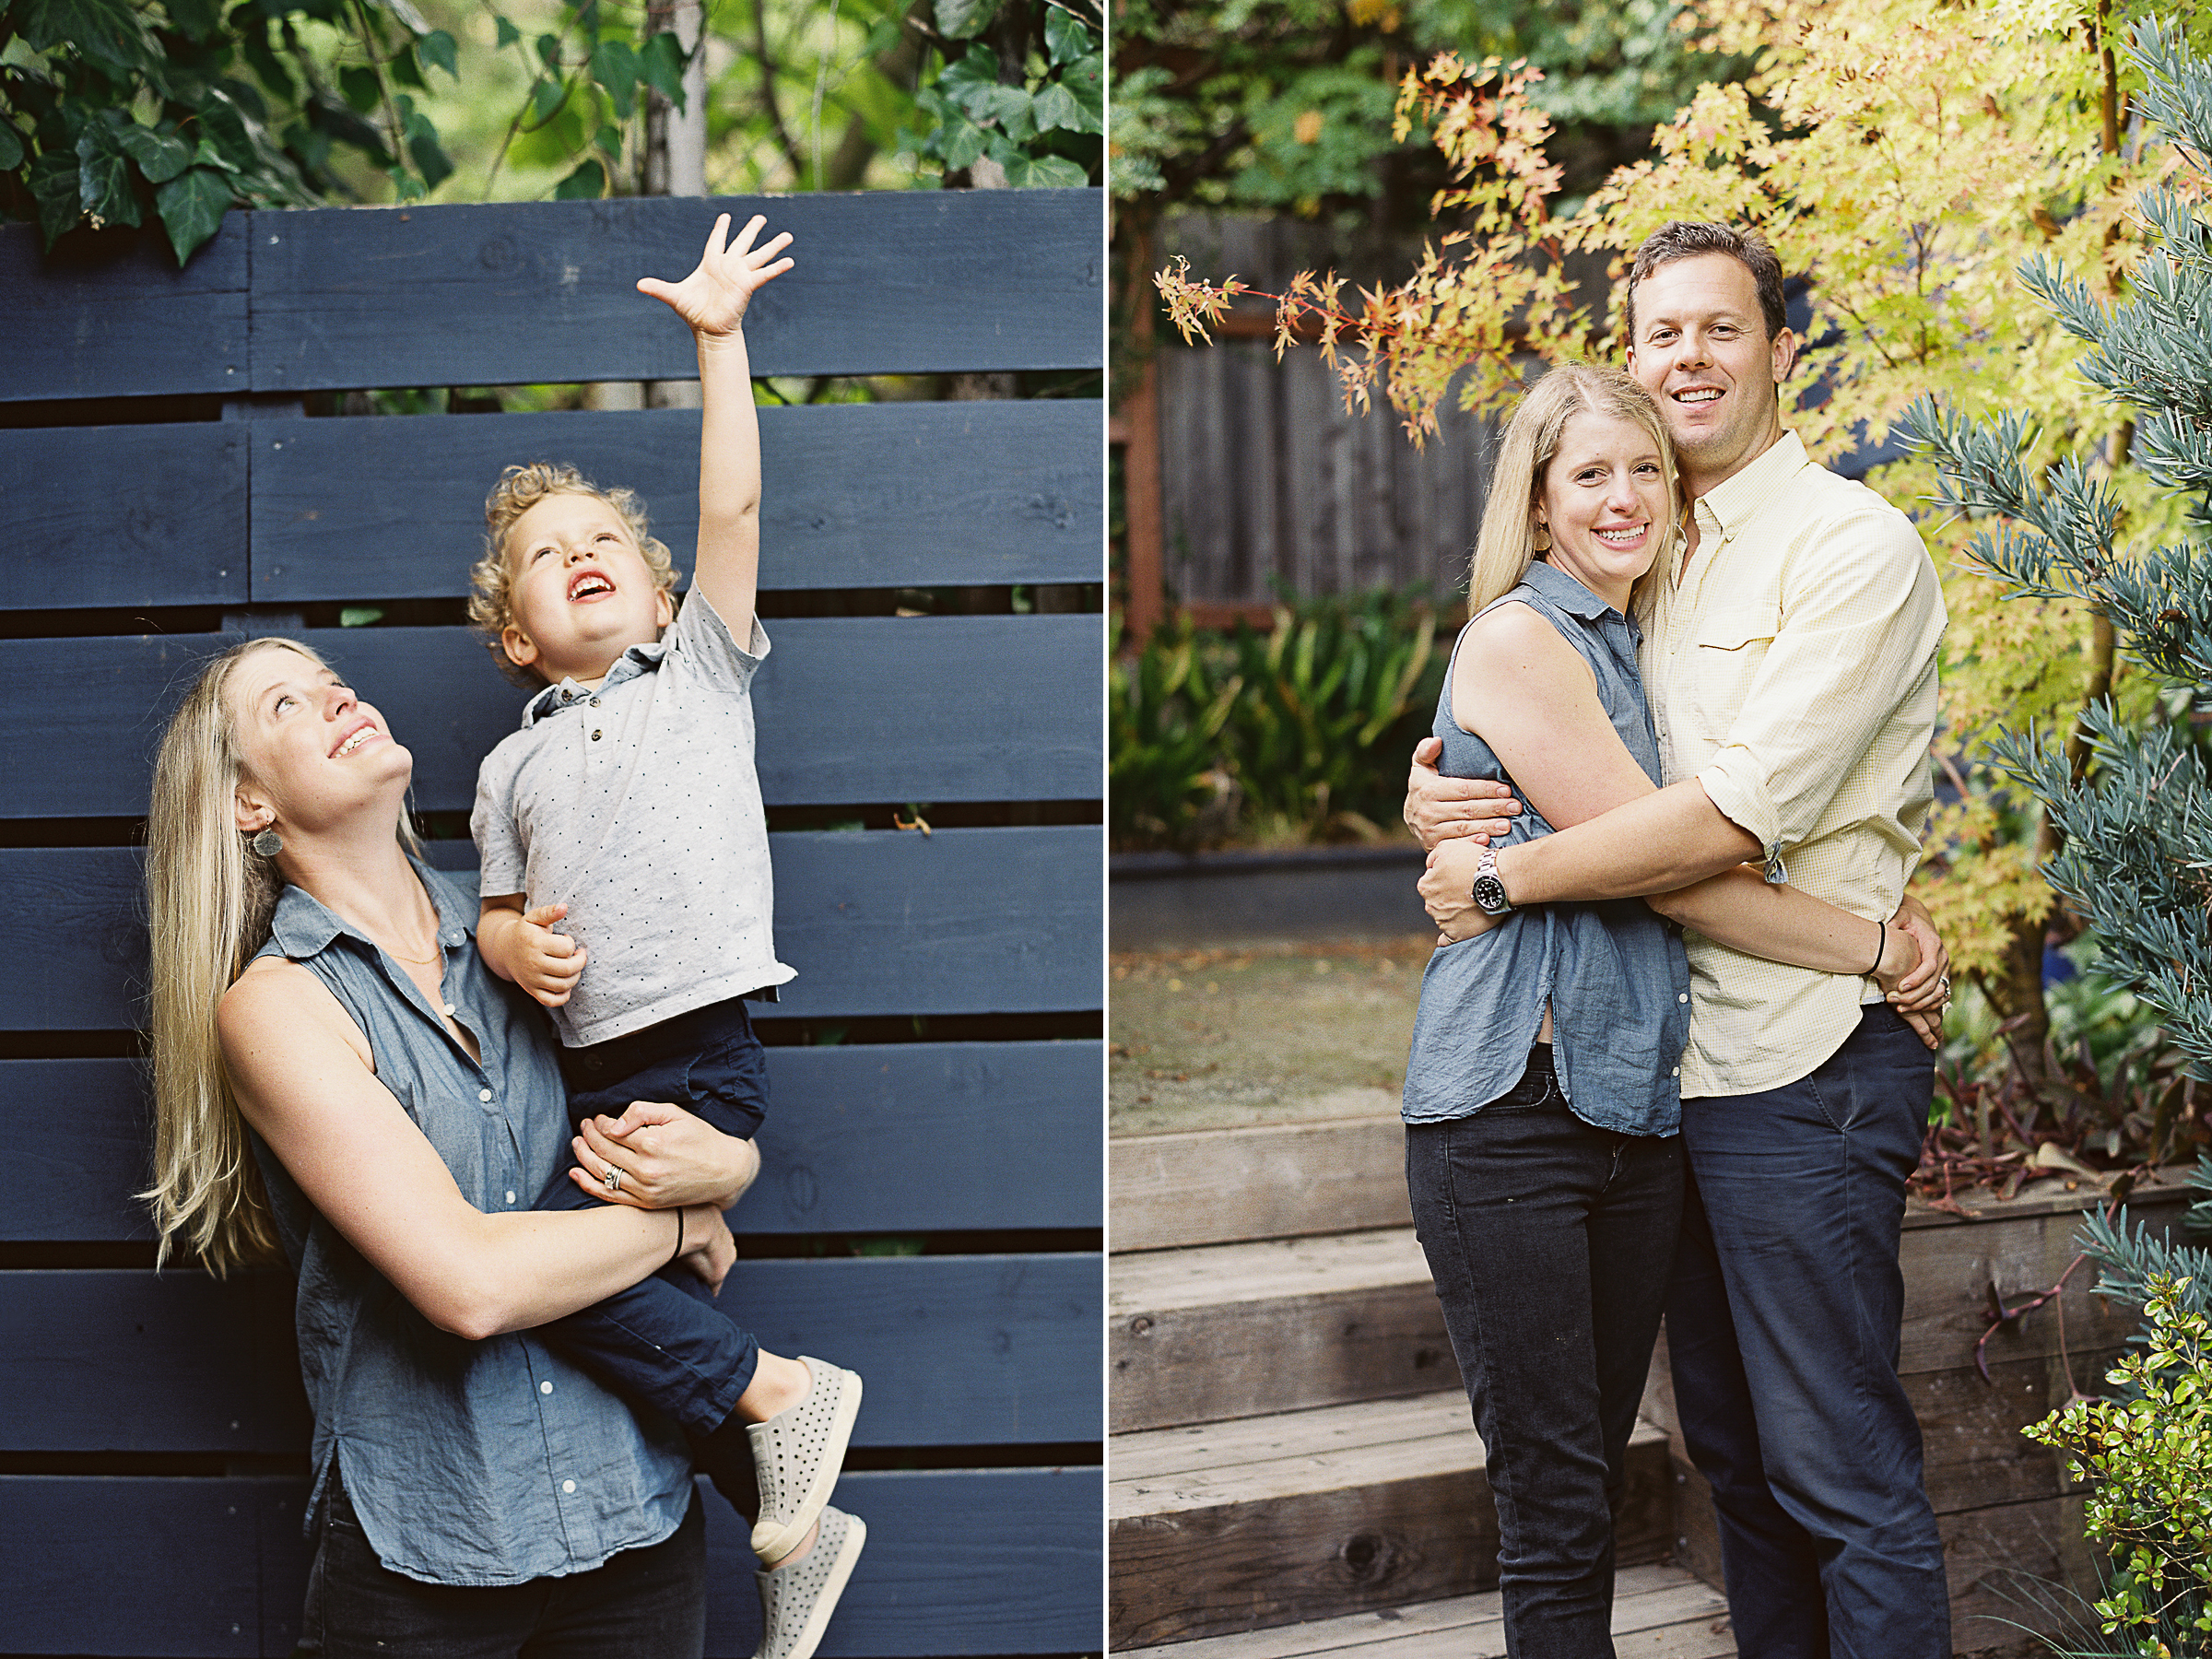 Meghan Mehan Photography - San Francisco Newborn and Family Photographer 041.jpg